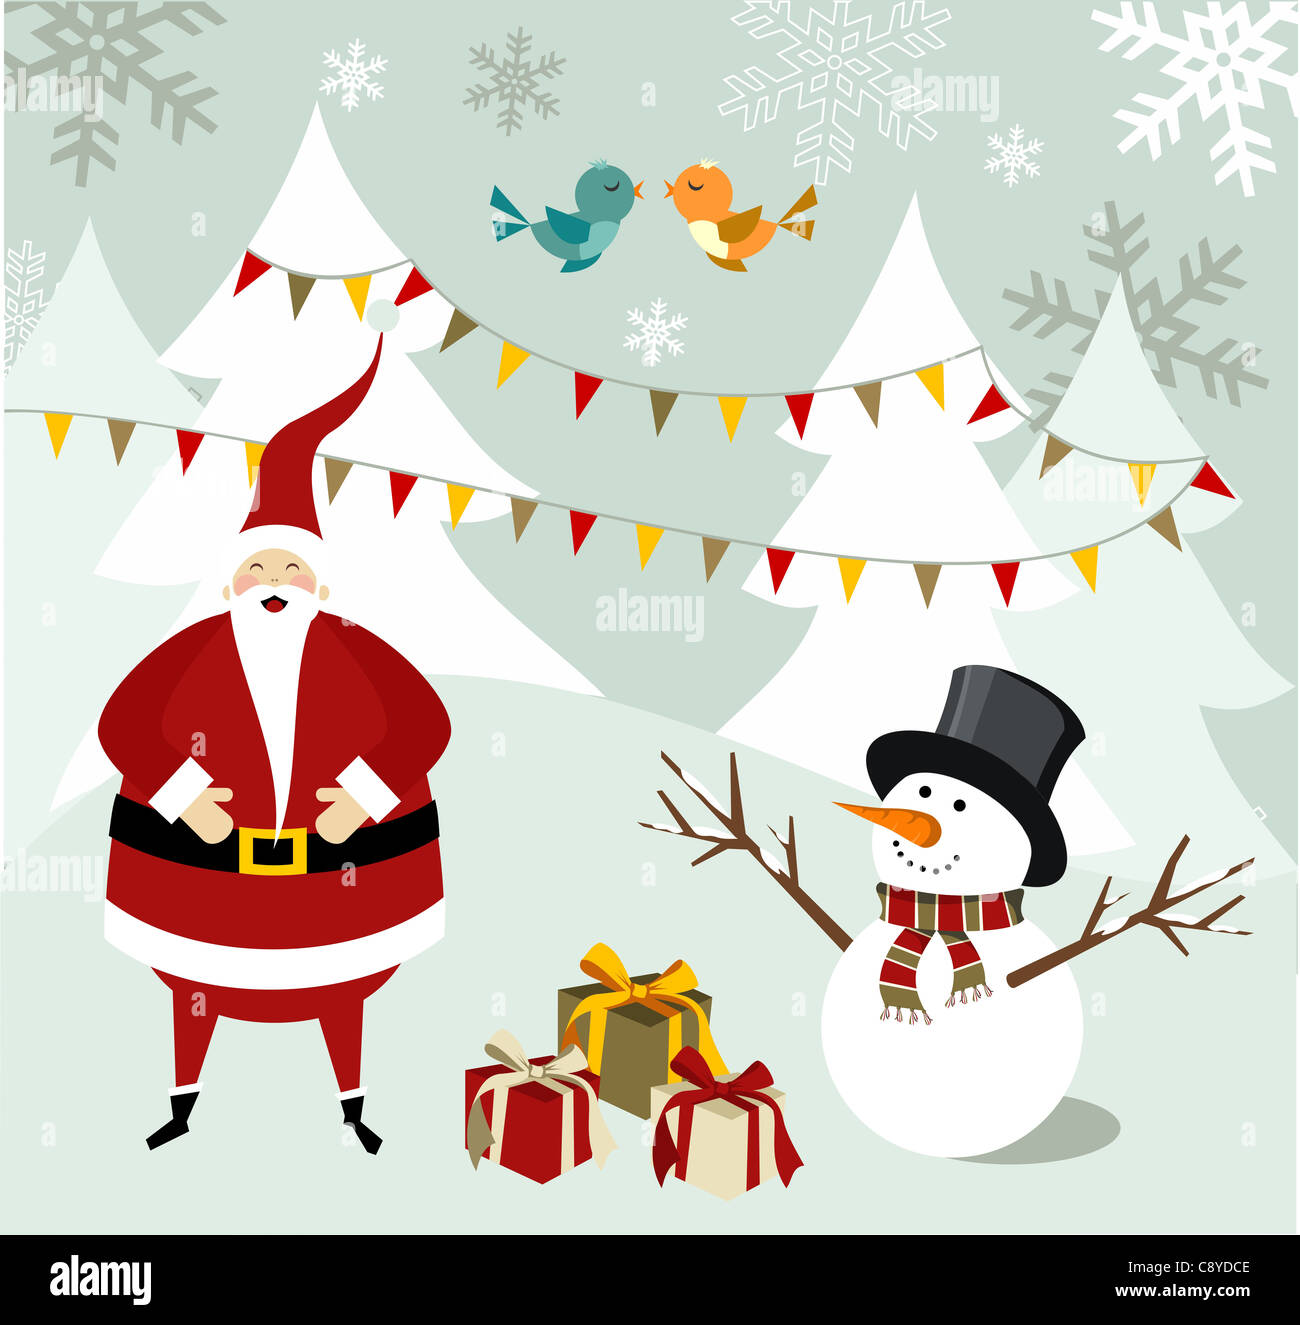 Santa Claus and snowman illustration celebrating Christmas with gifts in a snowy background. Vector file available. - Stock Image